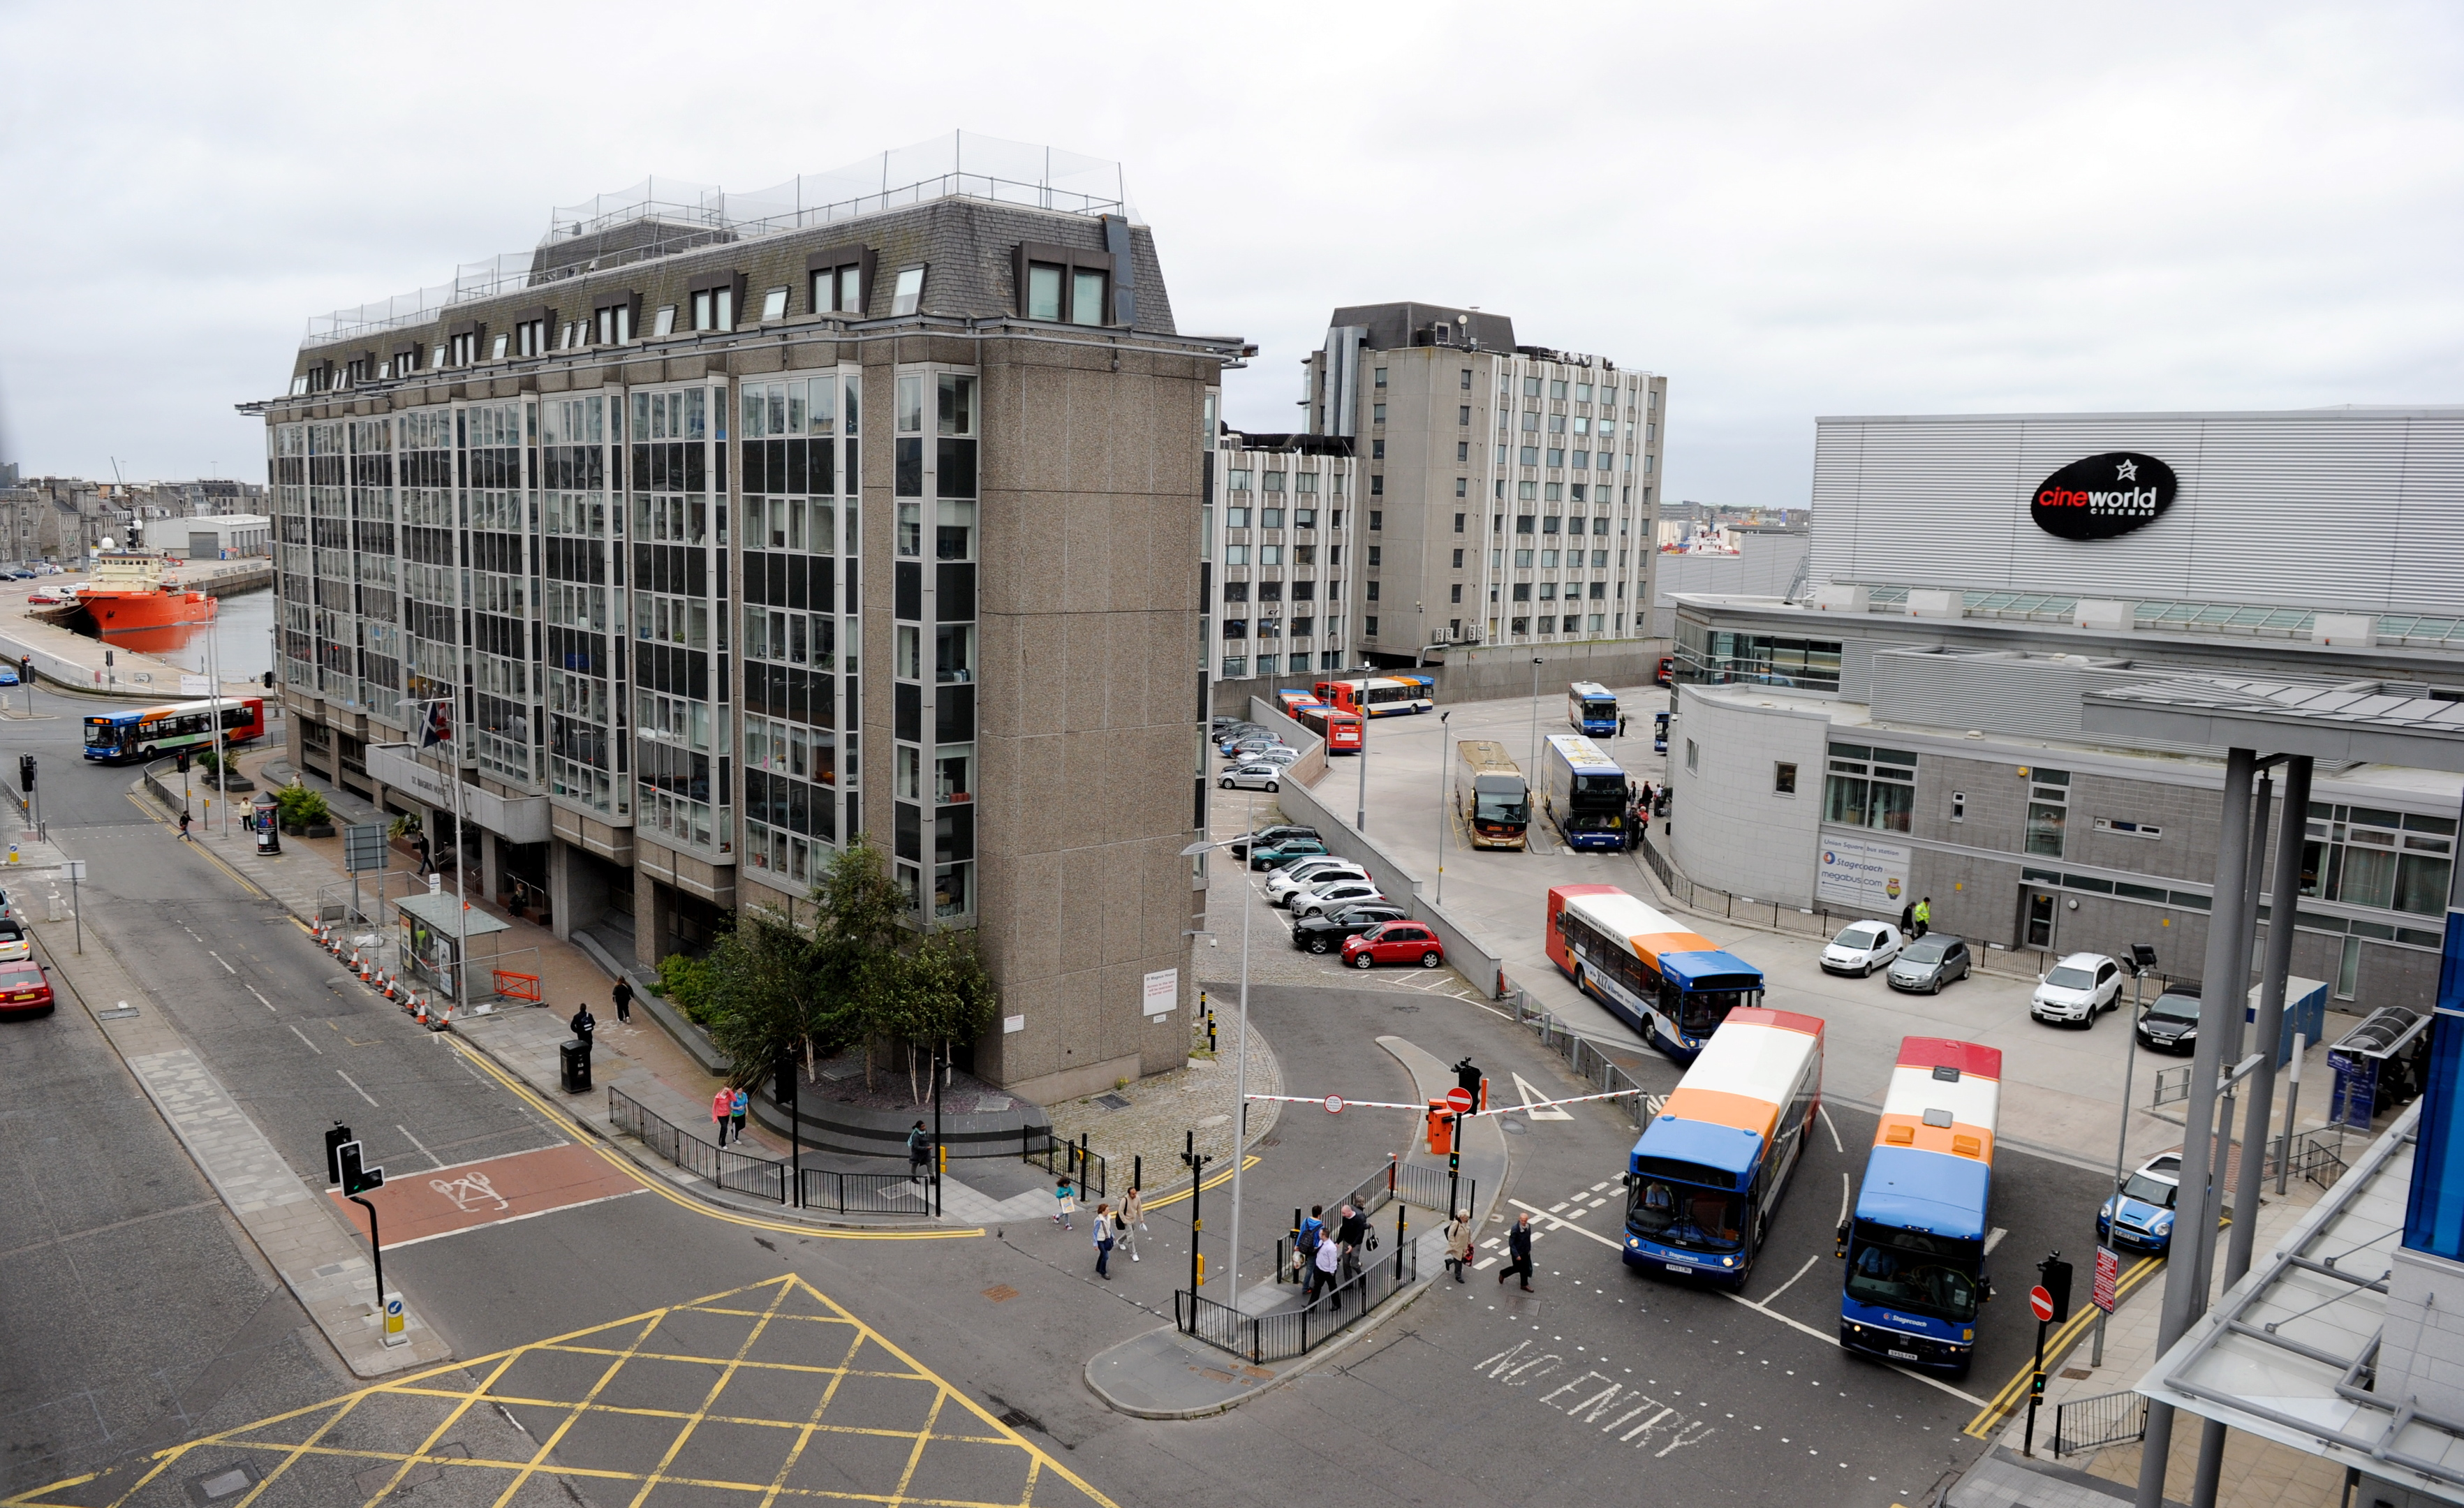 Stagecoach has asked  that traffic problems should be addressed as part of Union Square plans.